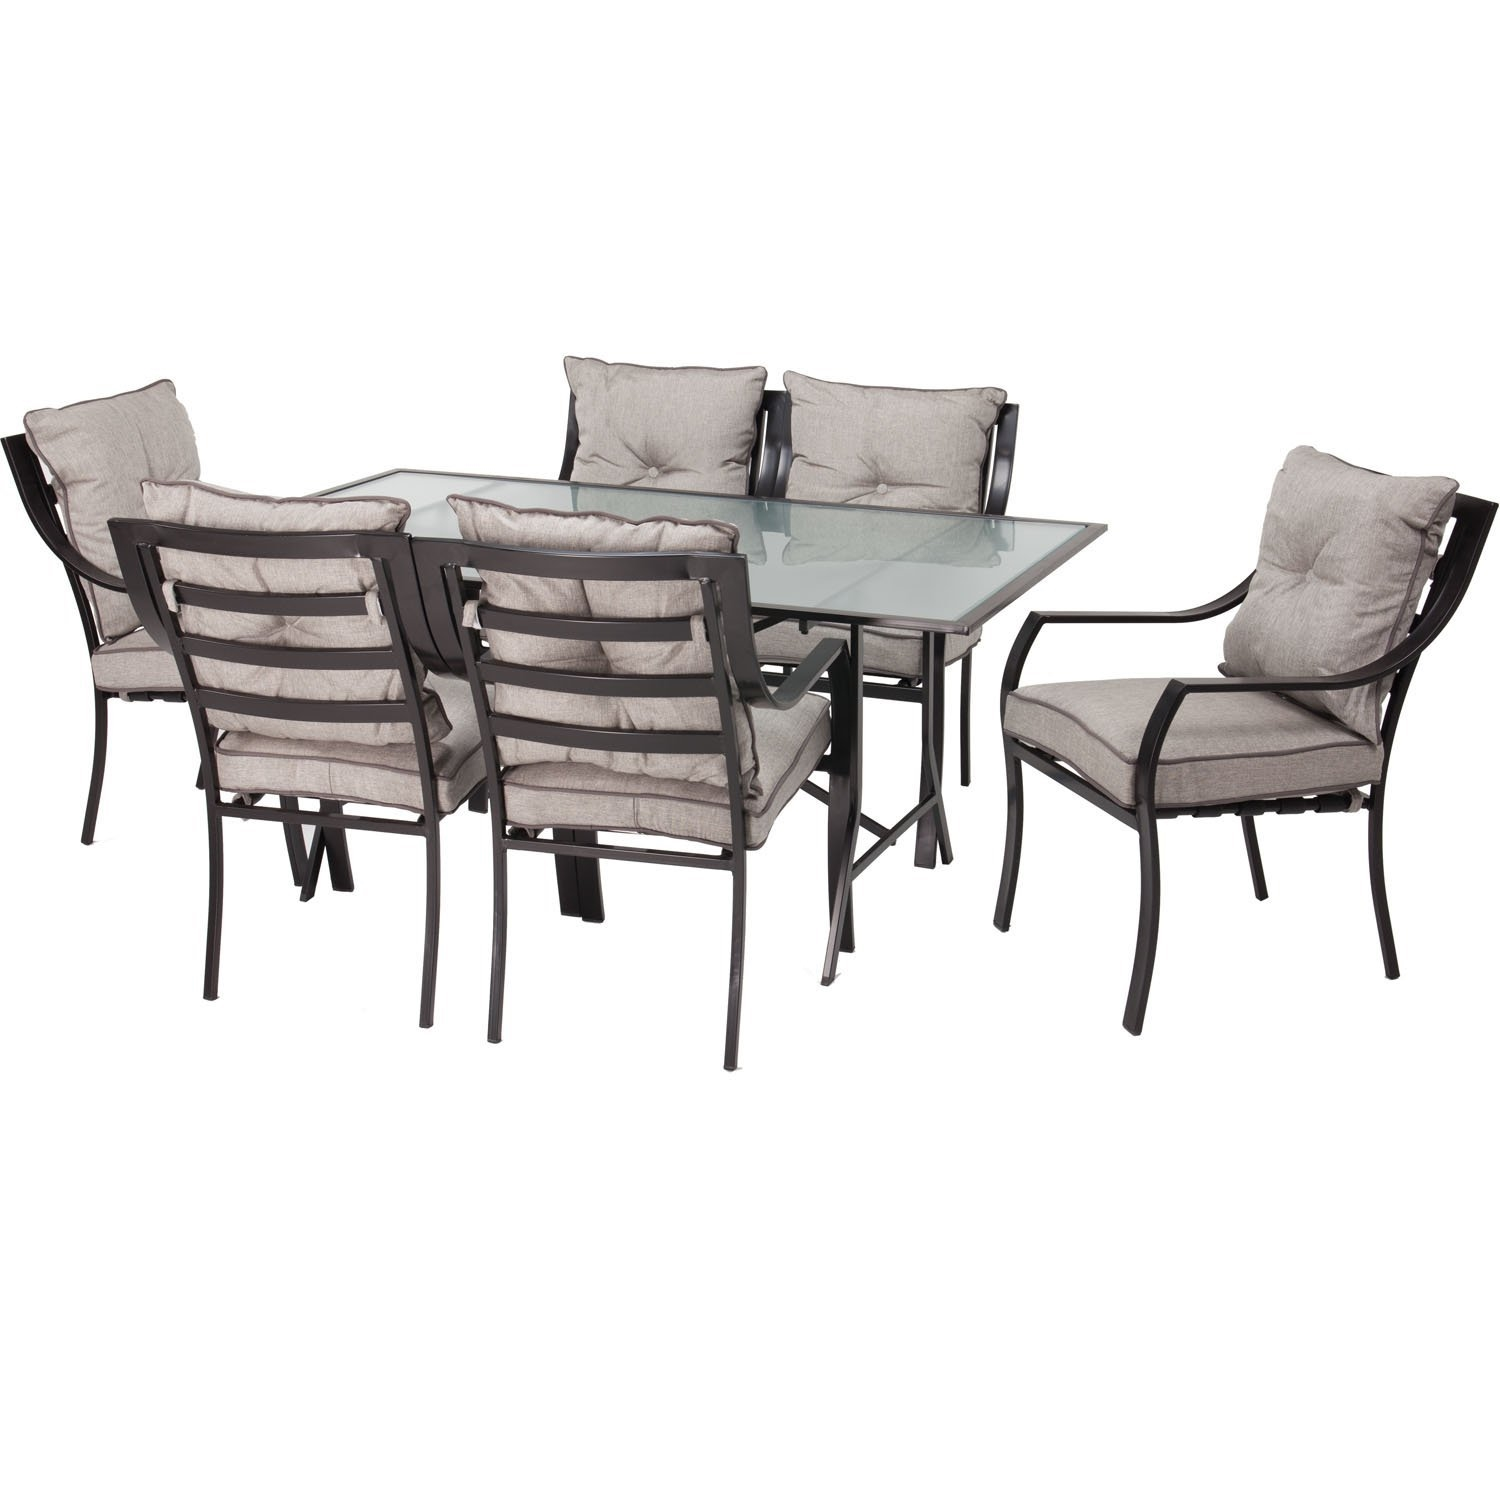 furniture piece with patio htm round table set metal black bistro p armchairs chairs wit